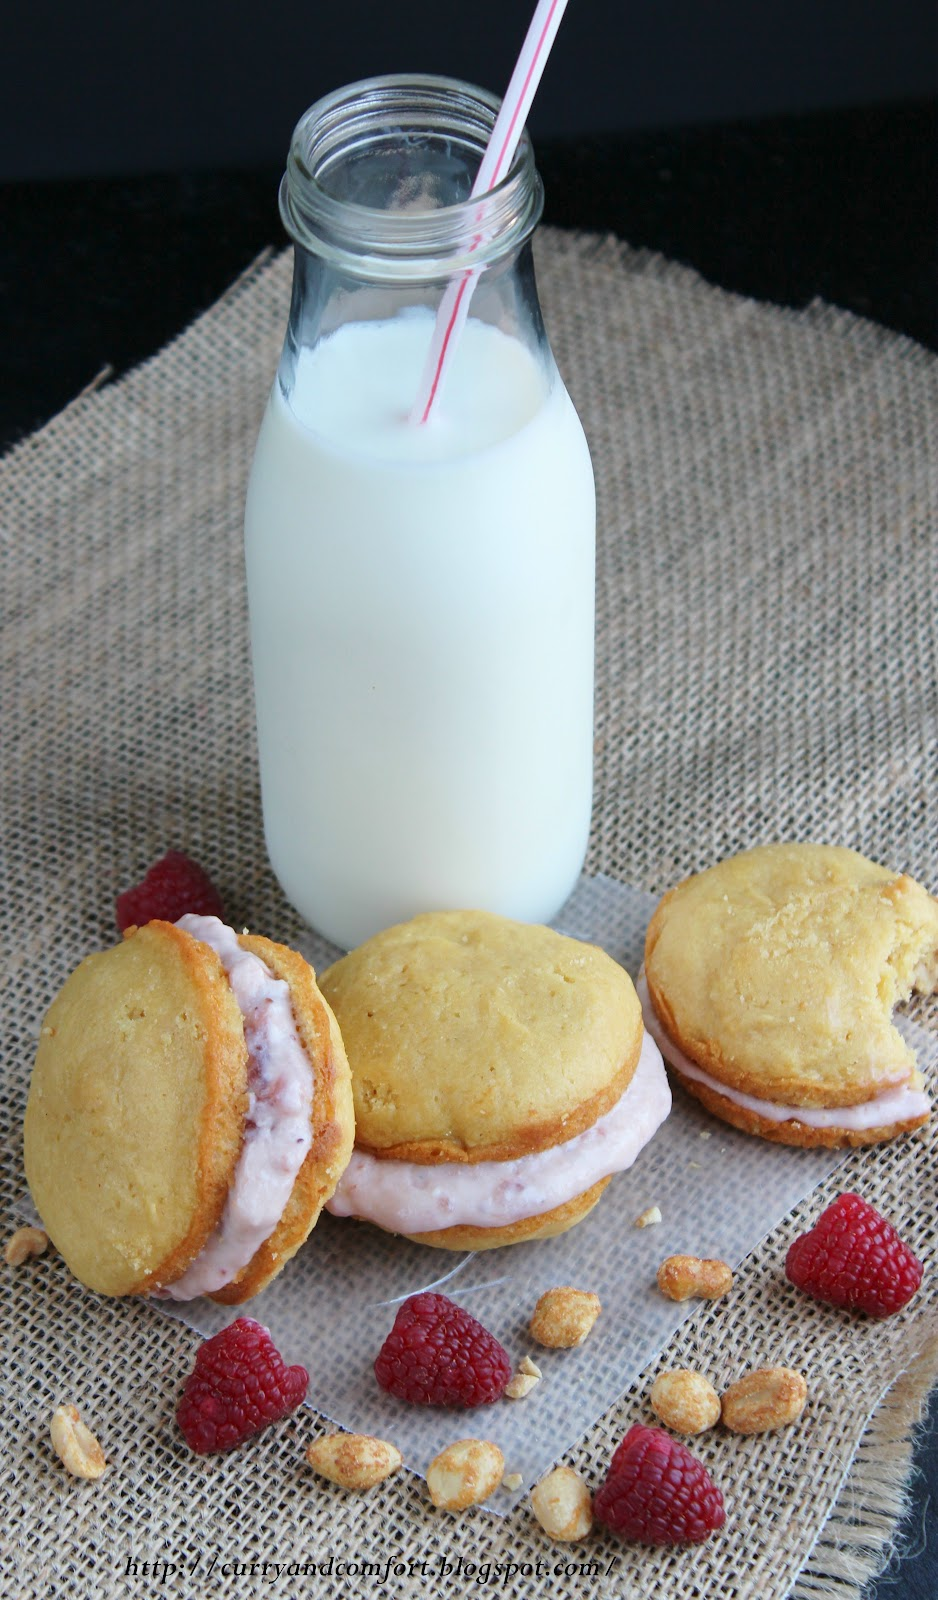 Kitchen Simmer Peanut Butter And Jelly Whoopie Pies